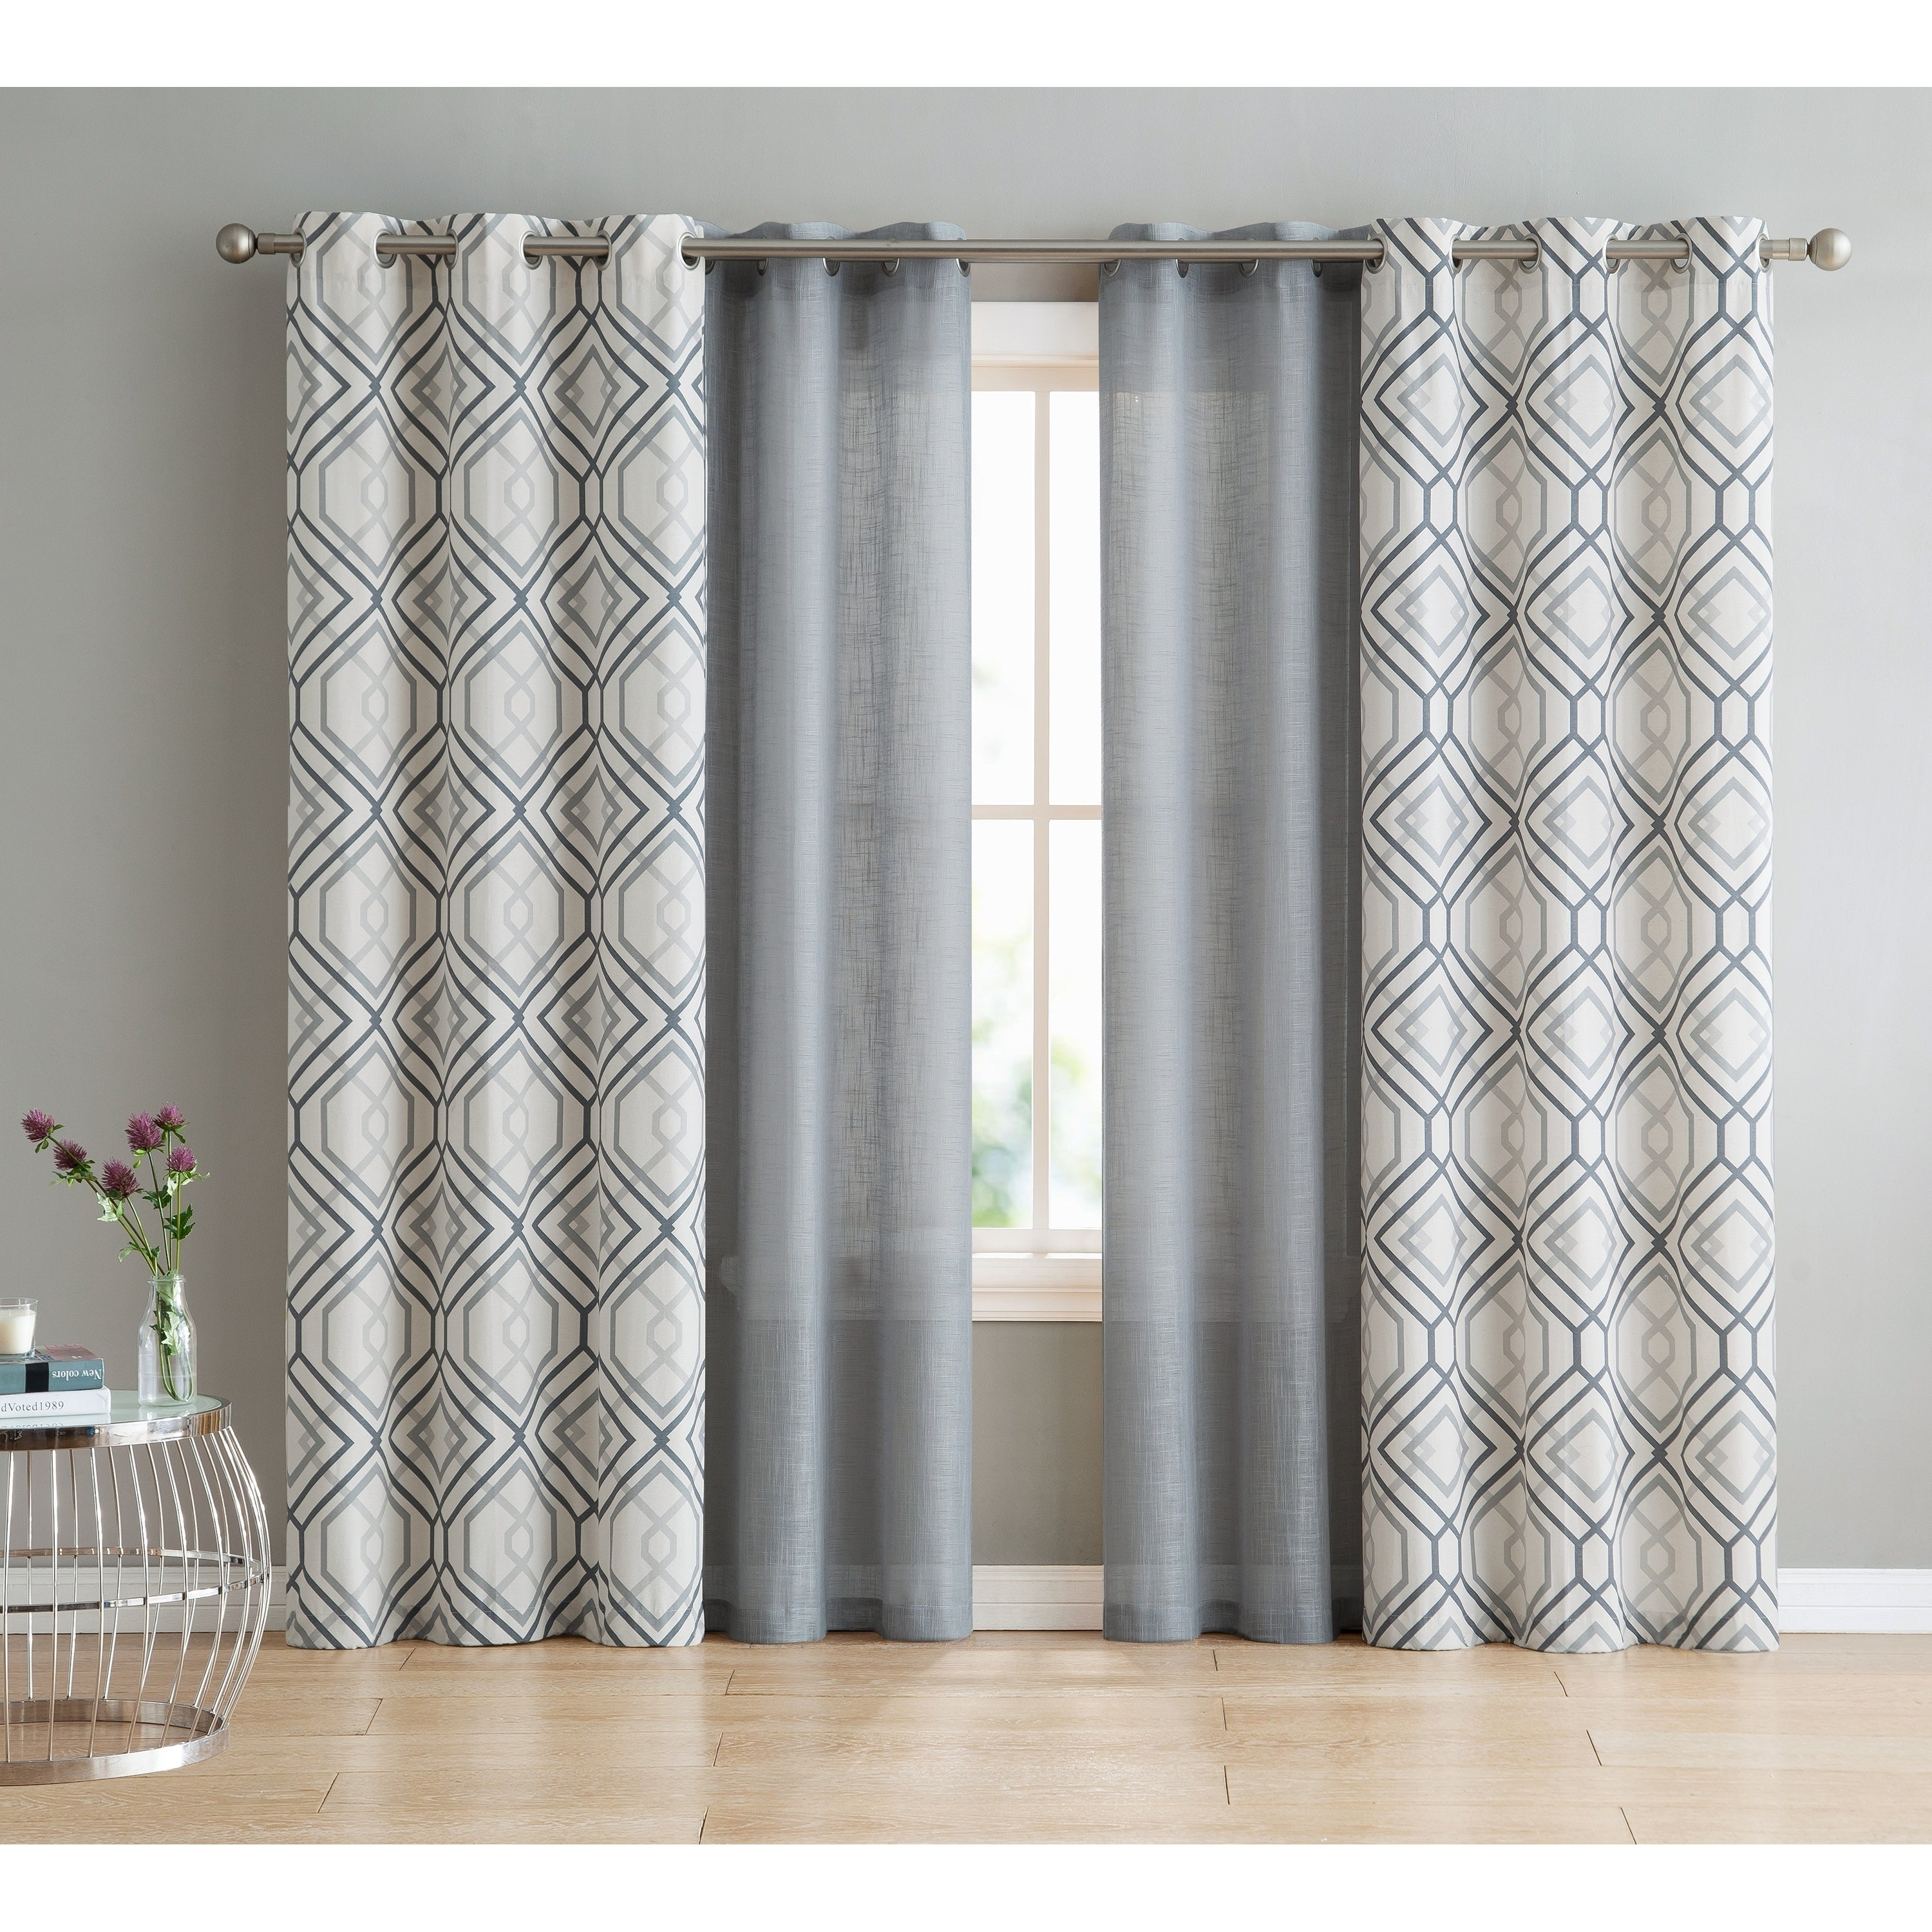 Vcny Home Jackston 4 Piece Curtain Panel Set Pertaining To Essentials Almaden Fretwork Printed Grommet Top Curtain Panel Pairs (View 10 of 20)